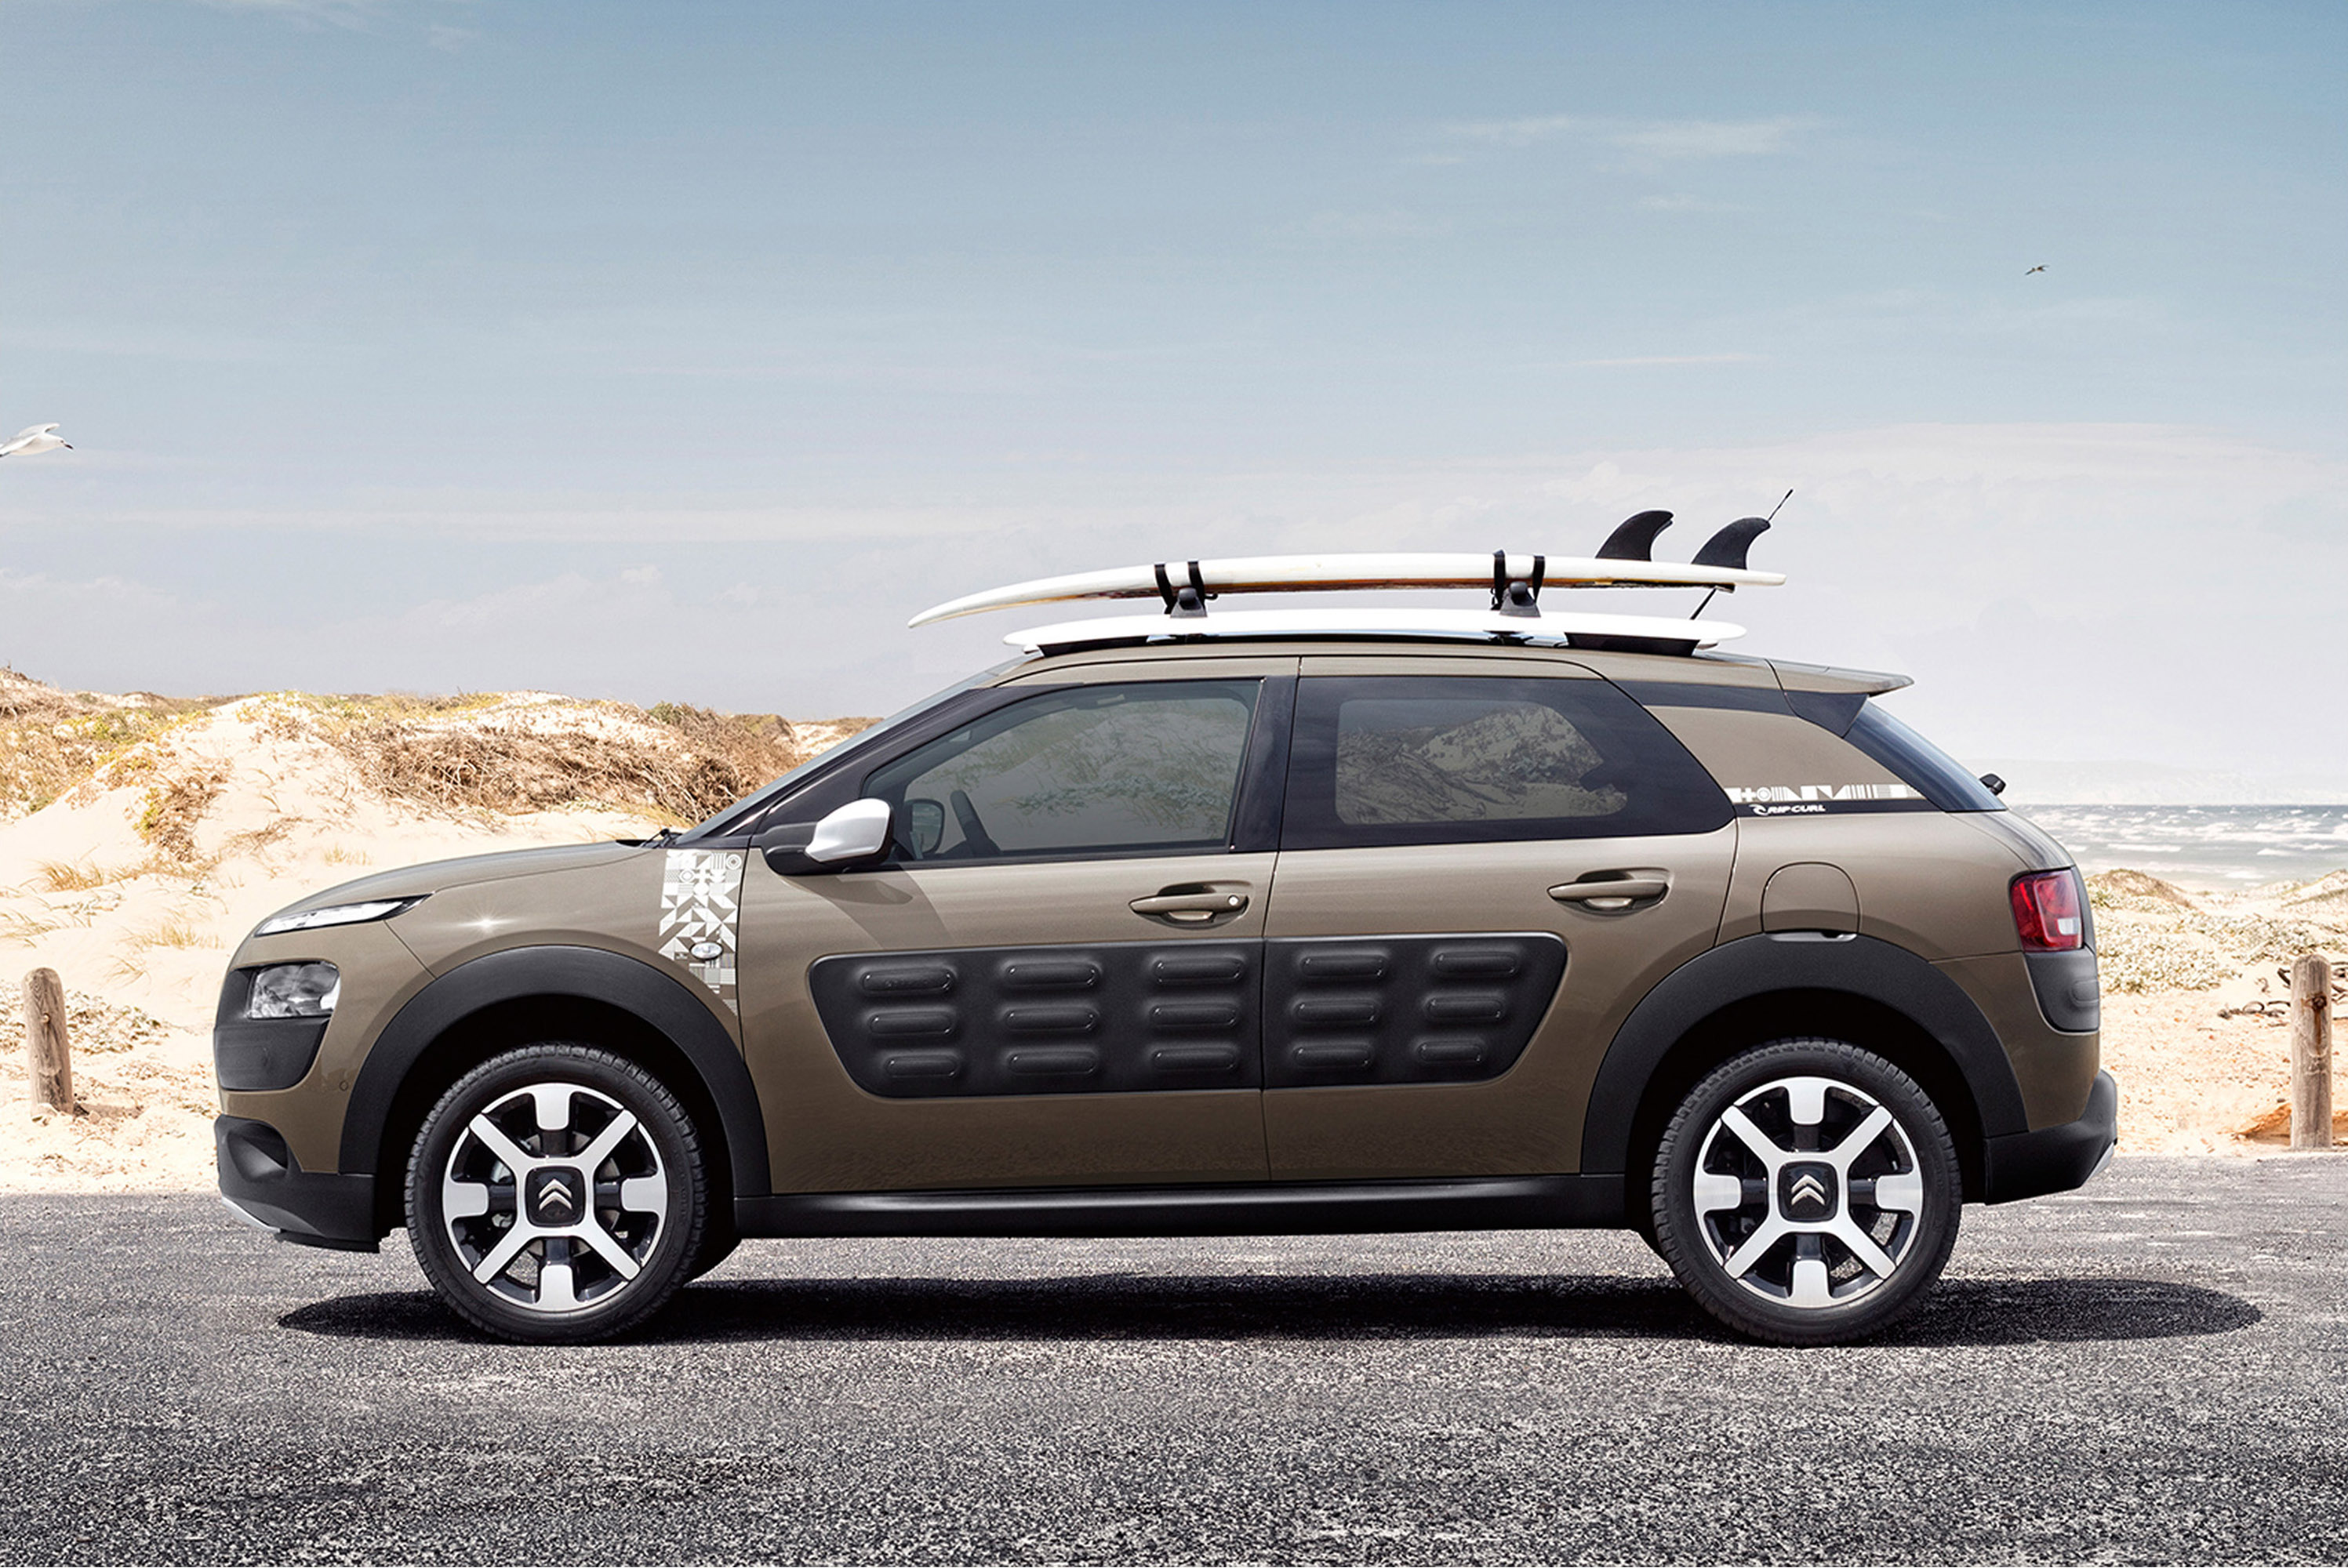 Citroen And Rip Curl Present A Special C4 Cactus Model